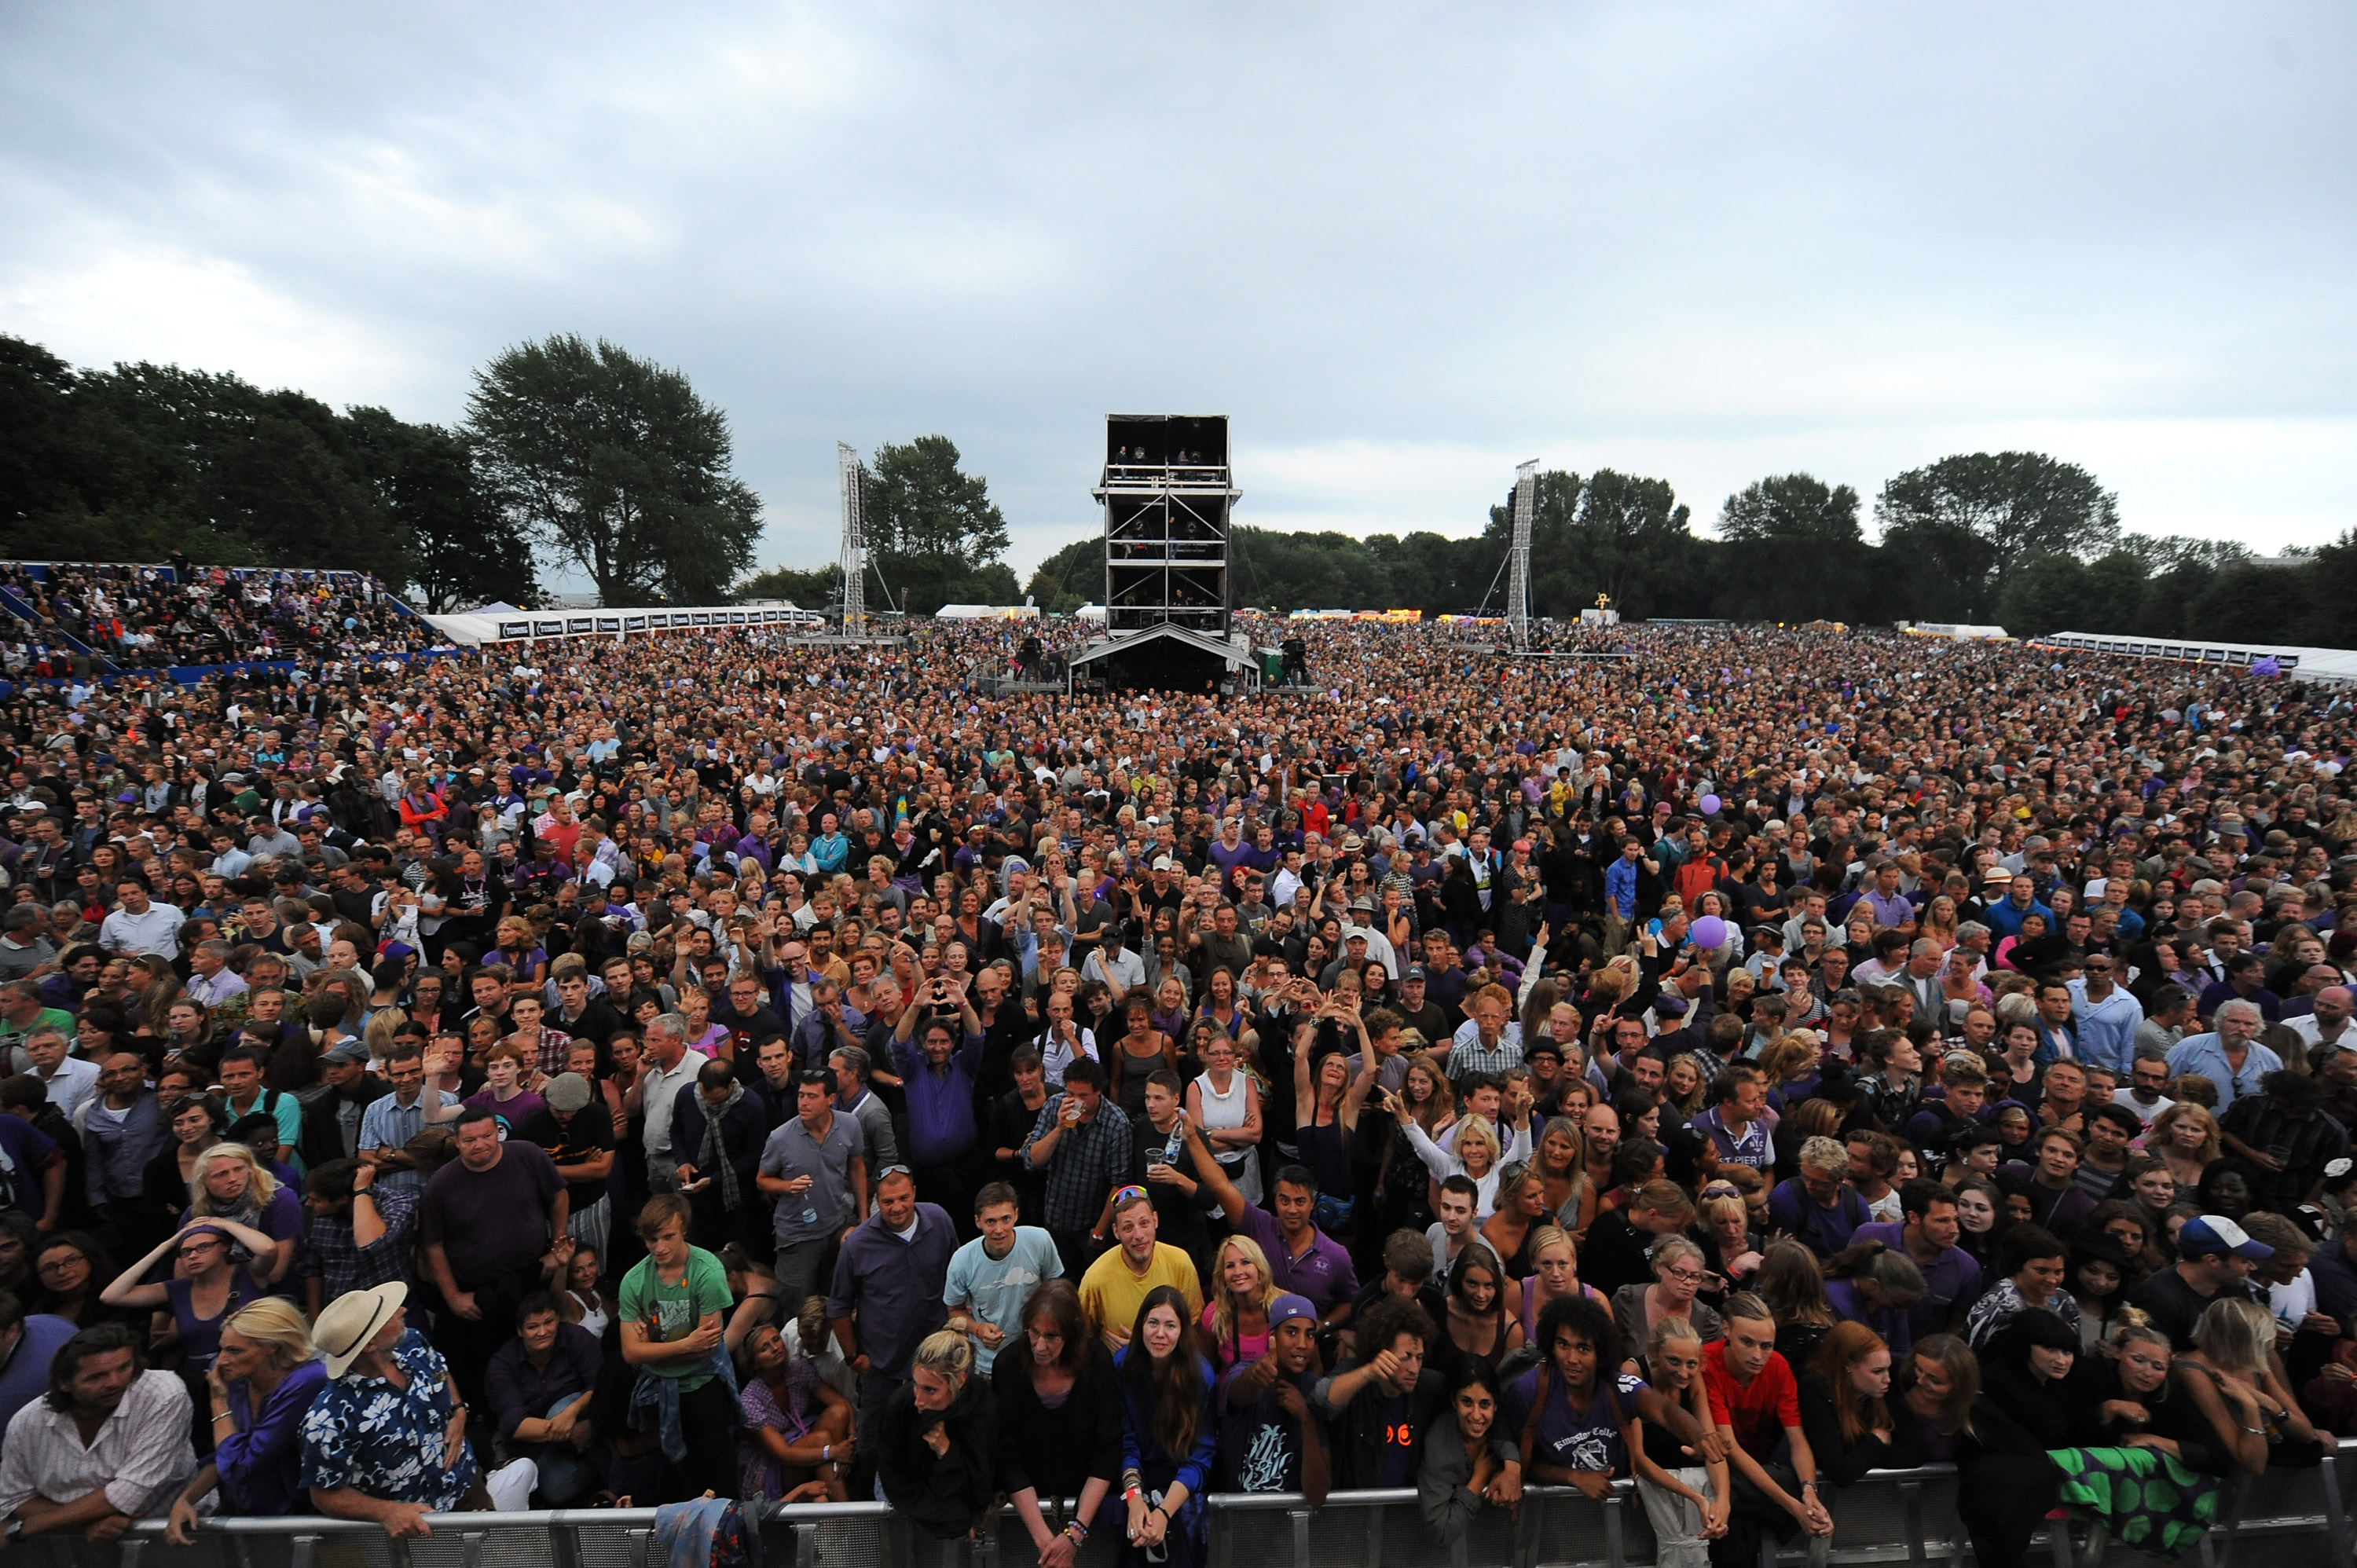 Crowd For The NPG Music And Arts Festival. NPG Records 2011